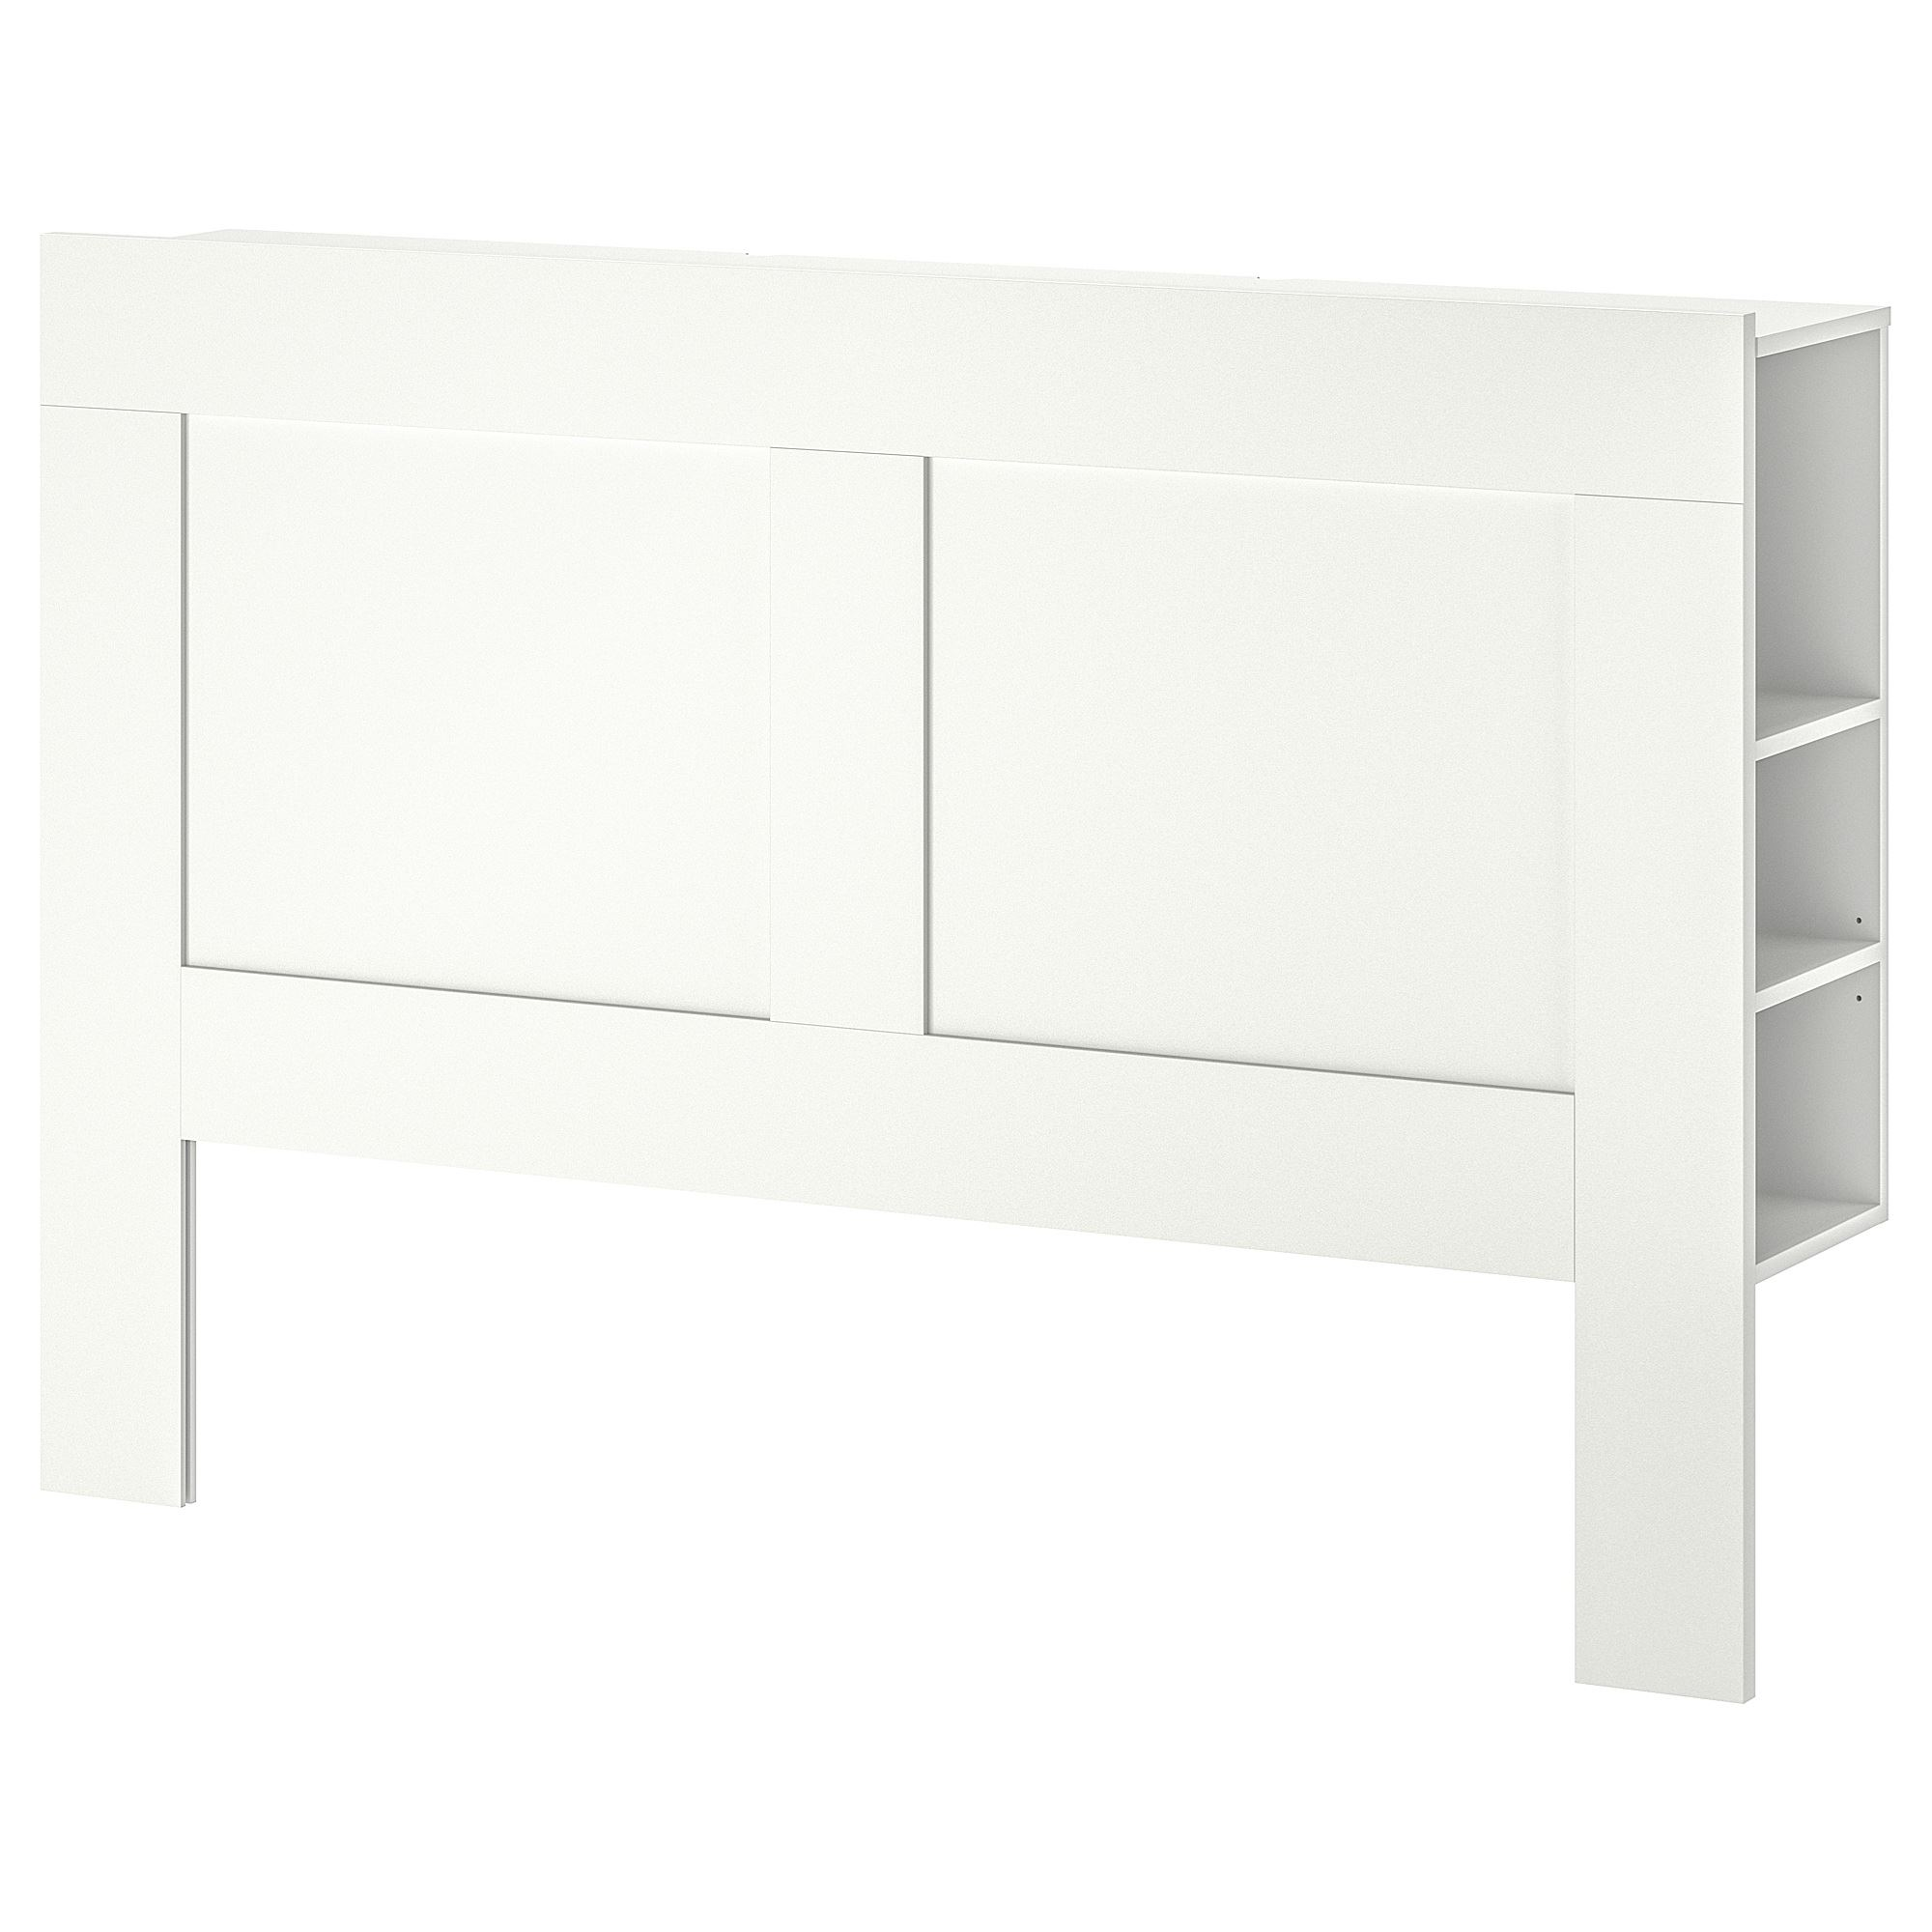 Ikea Bedroom Leirvik Hemnes Is Creative Inspiration For Us: BRIMNES Headboard With Storage Compartment White 140 Cm